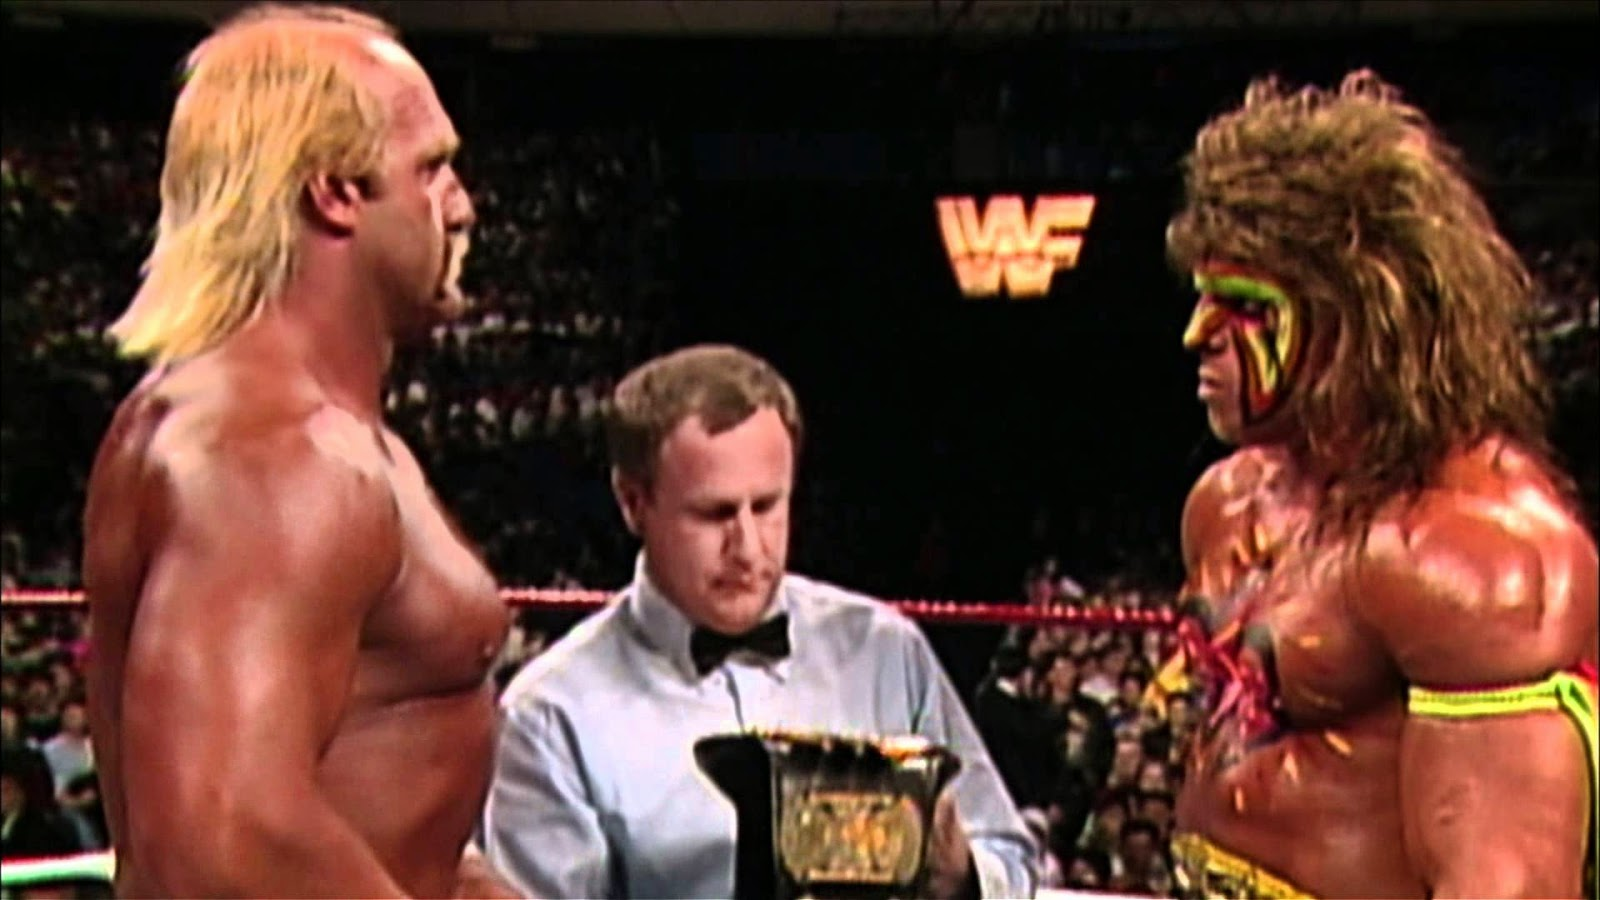 Hulk Hogan Vs Ultimate Warrior Wrestlemania 6 | www ...